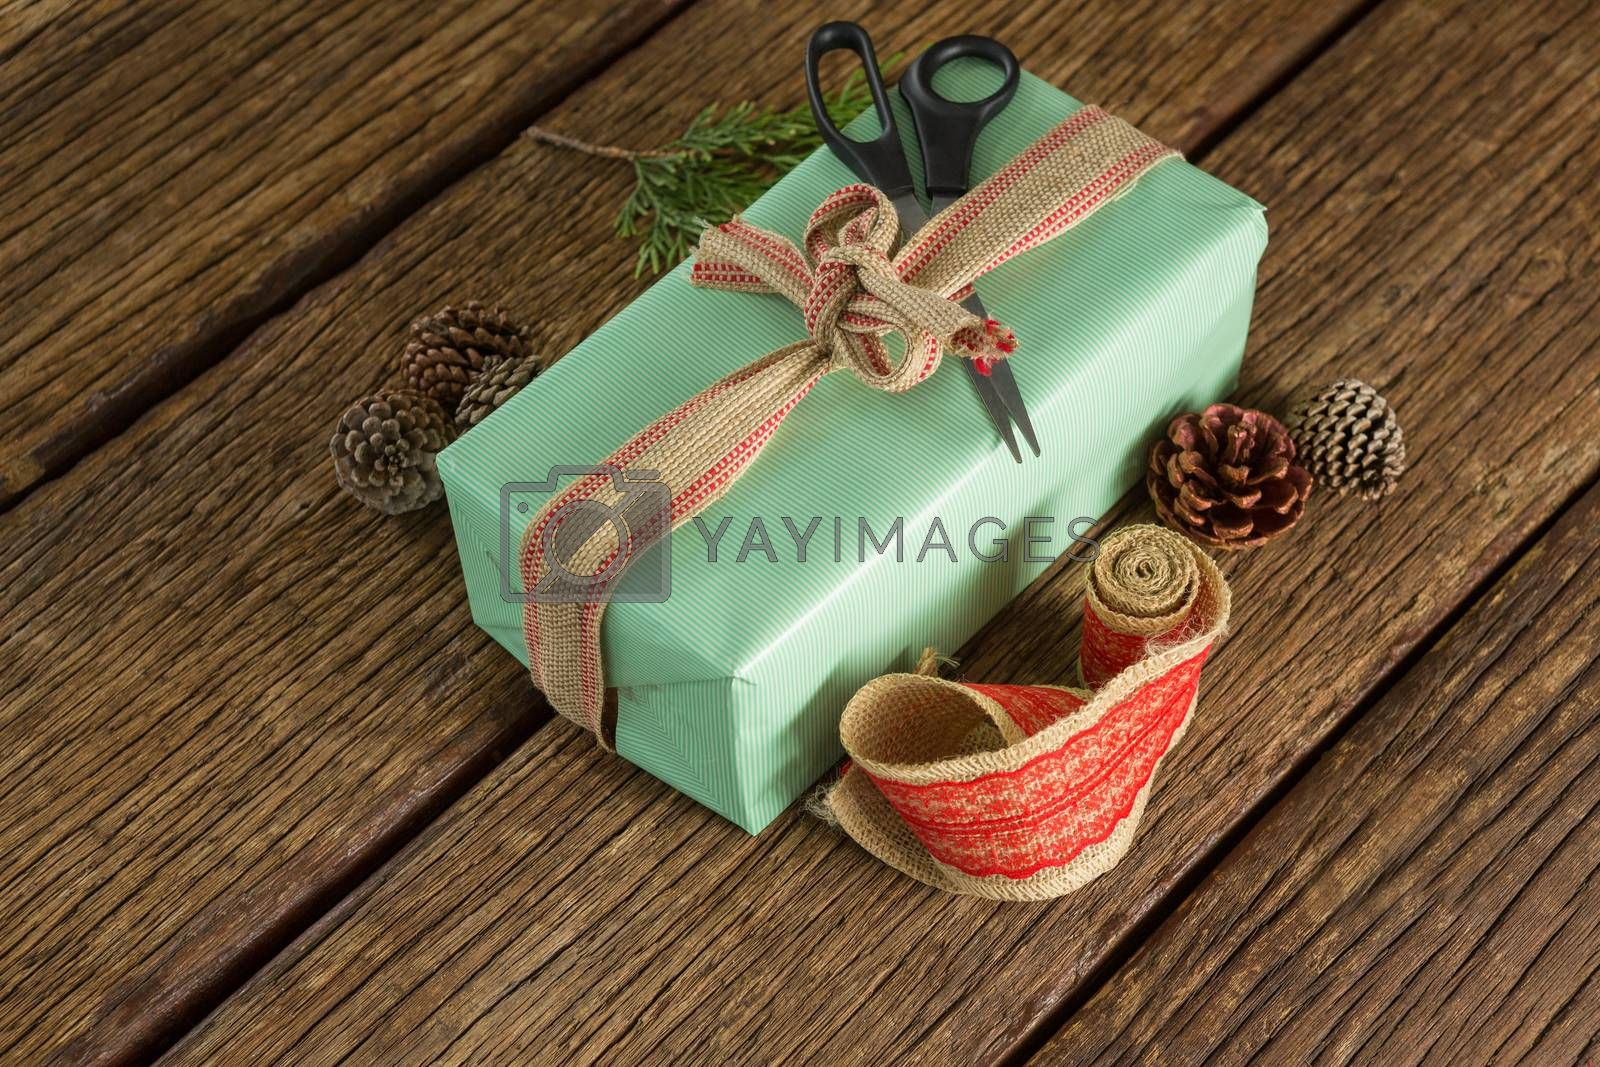 Scissors, pine cones, leaves and ribbon with wrapped gift box on wooden table by Wavebreakmedia